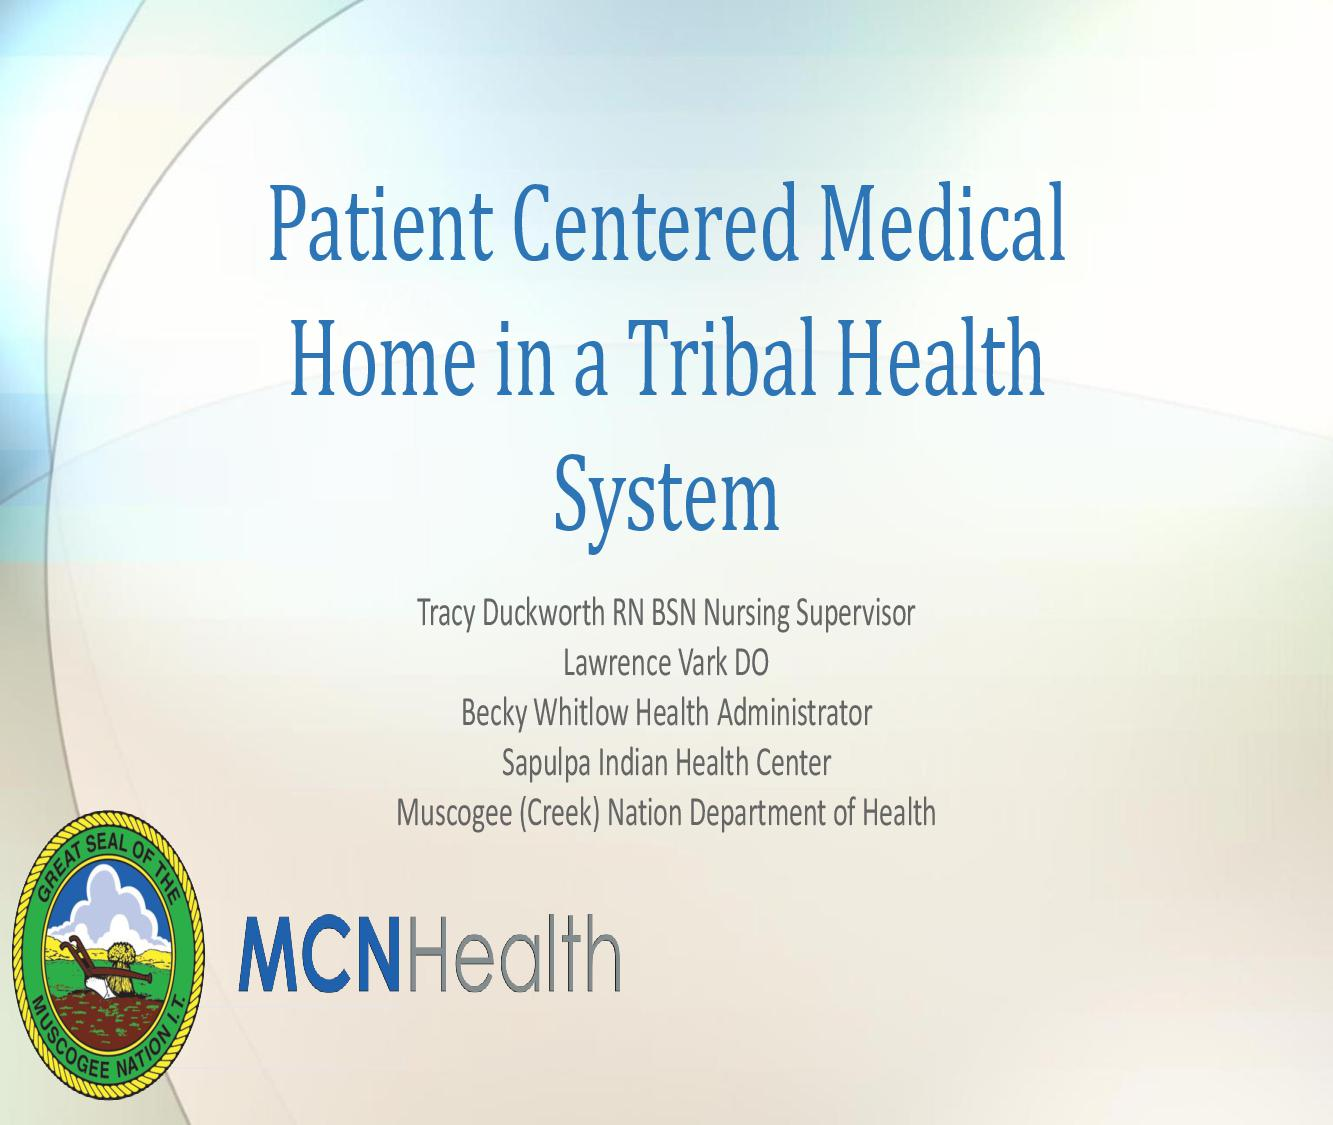 Creating a Patient Centered Medical Home in a